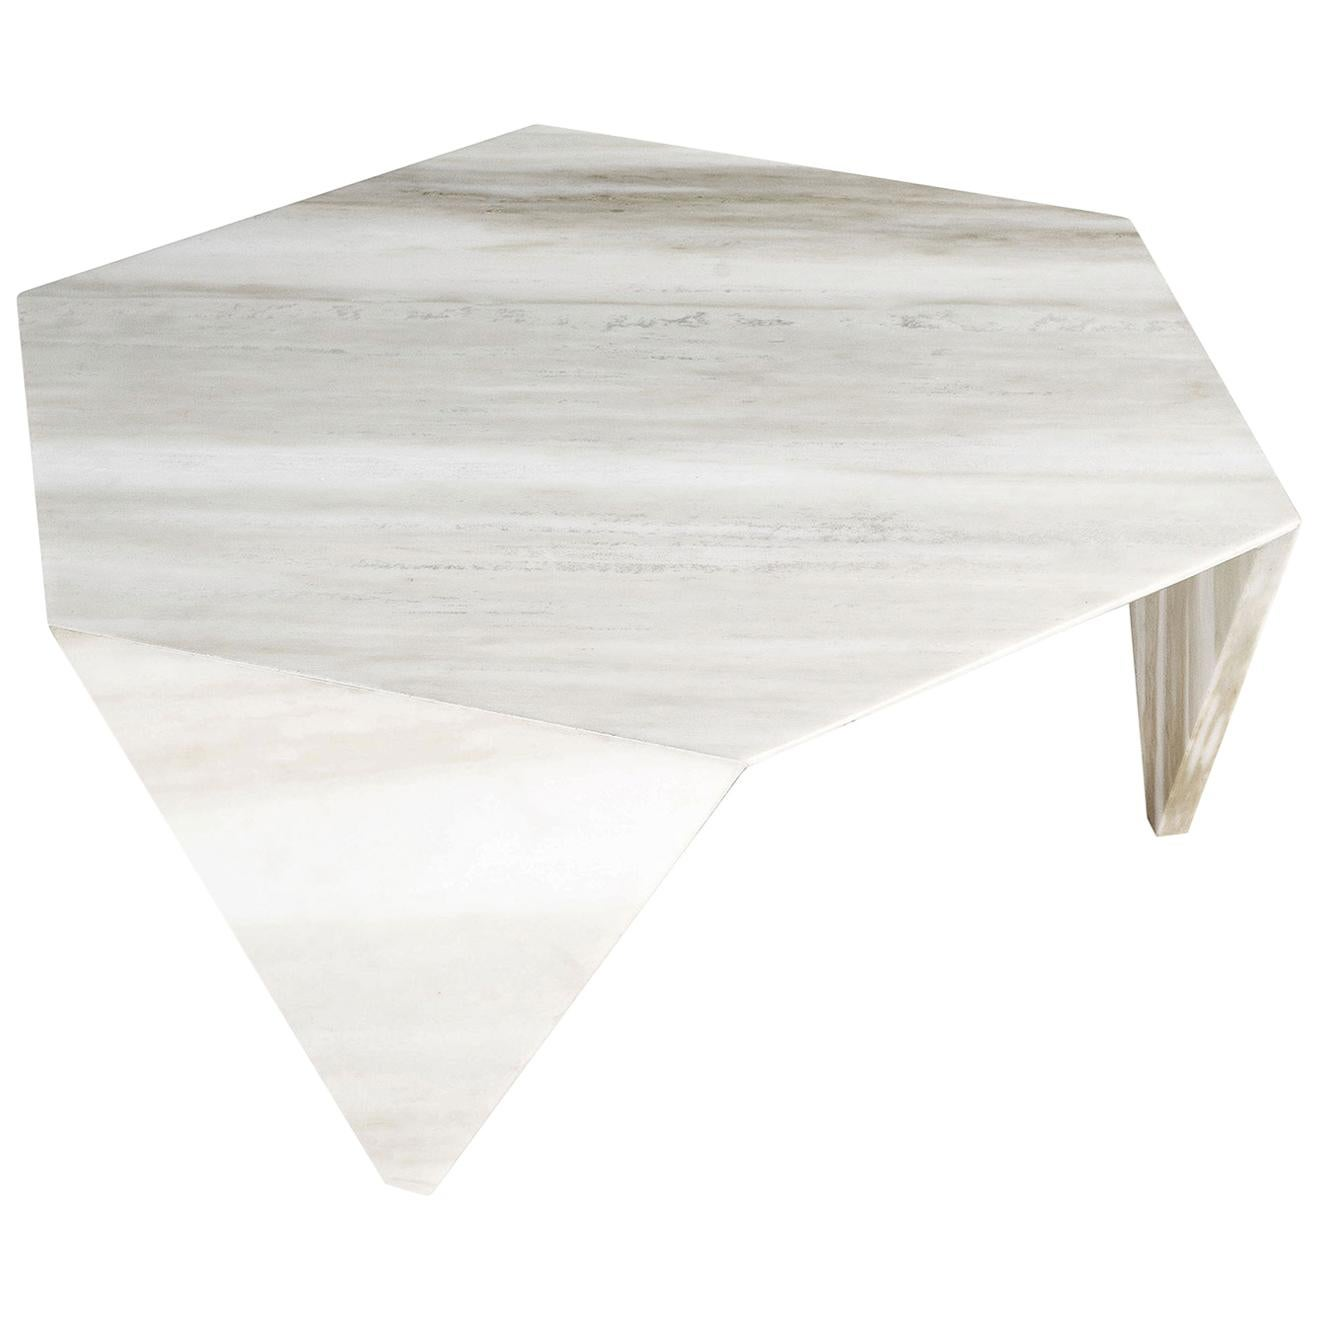 Small Table Ruche, in Marble White New Calacatta, Italy